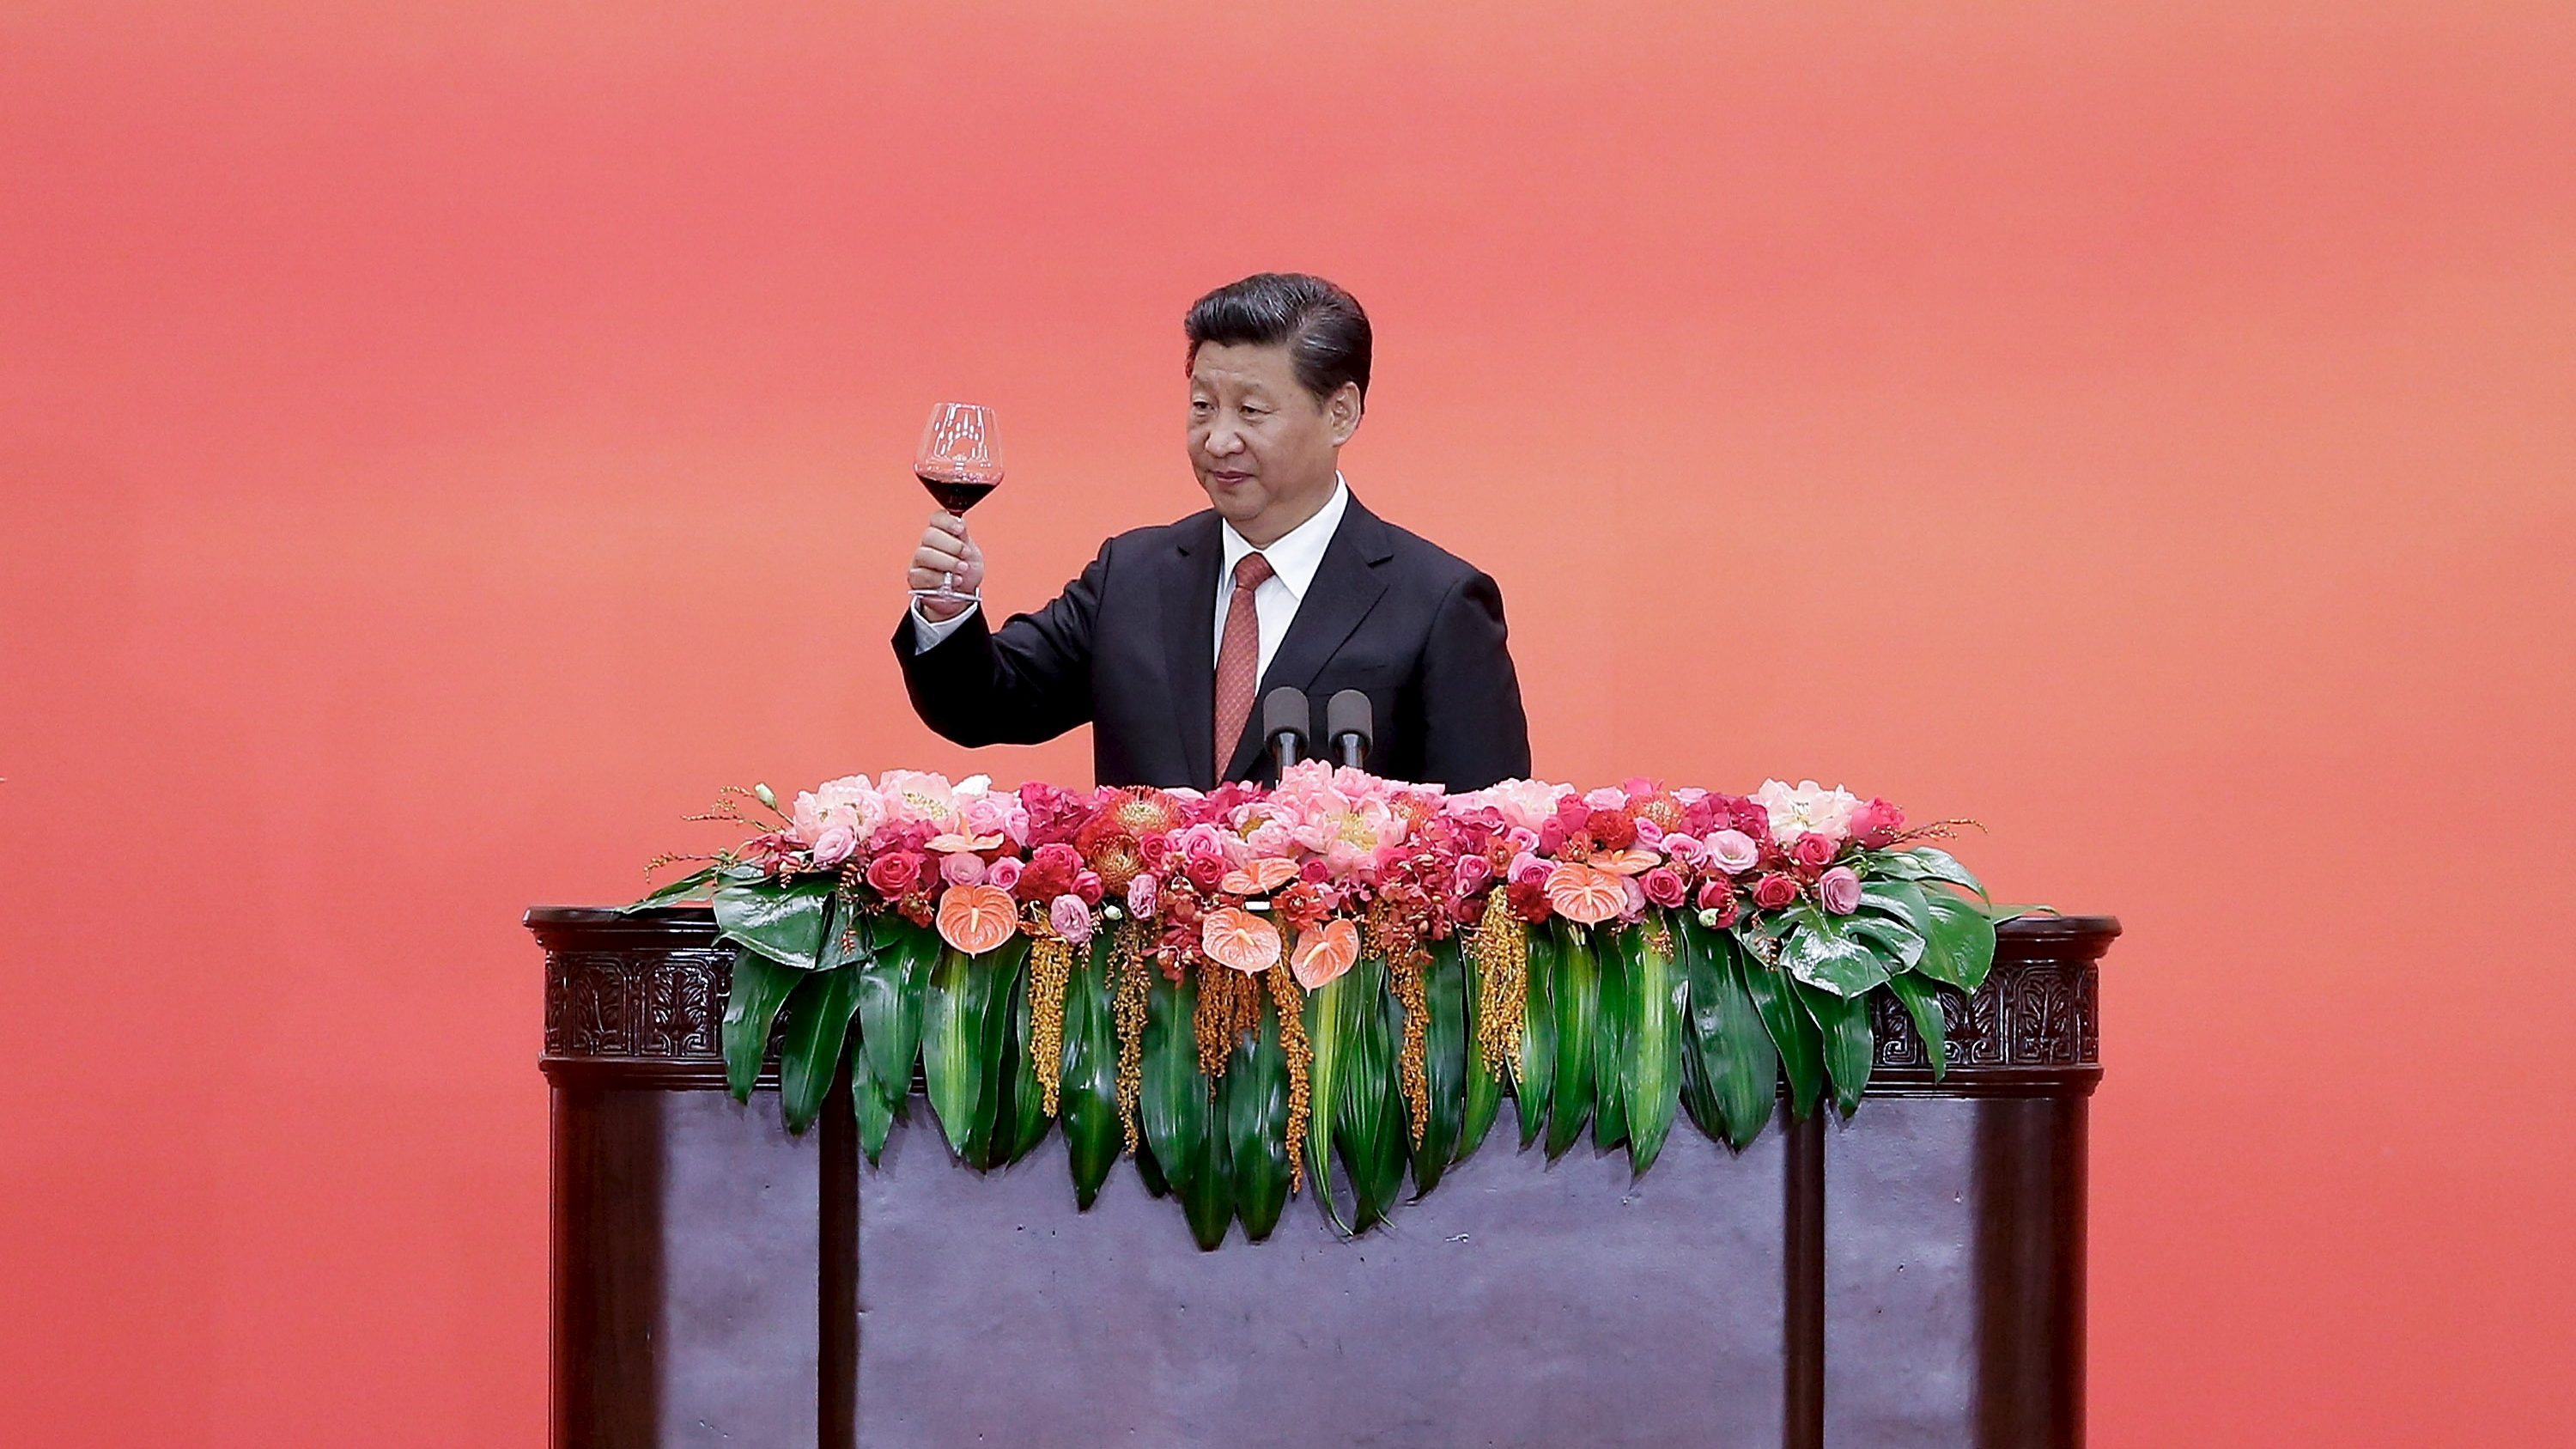 Chinese President Xi Jinping raises a toast to guests after speaking during a reception commemorating 70th anniversary of the end of World War Two, at the Great Hall Of The People in Beijing September 3, 2015.